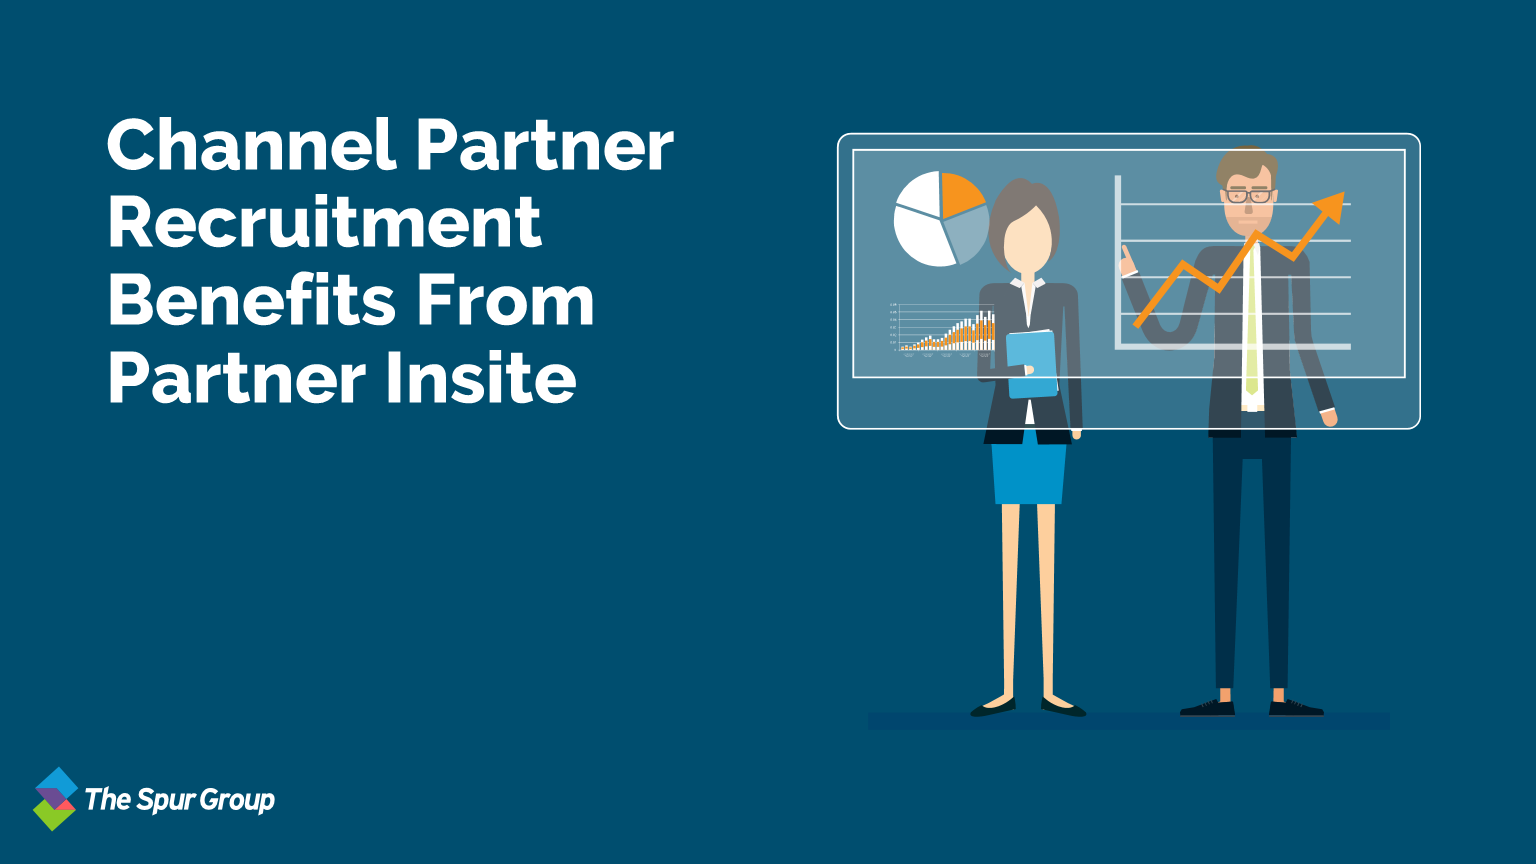 Channel Partner Recruitment Benefits From Partner Insite Featured Image